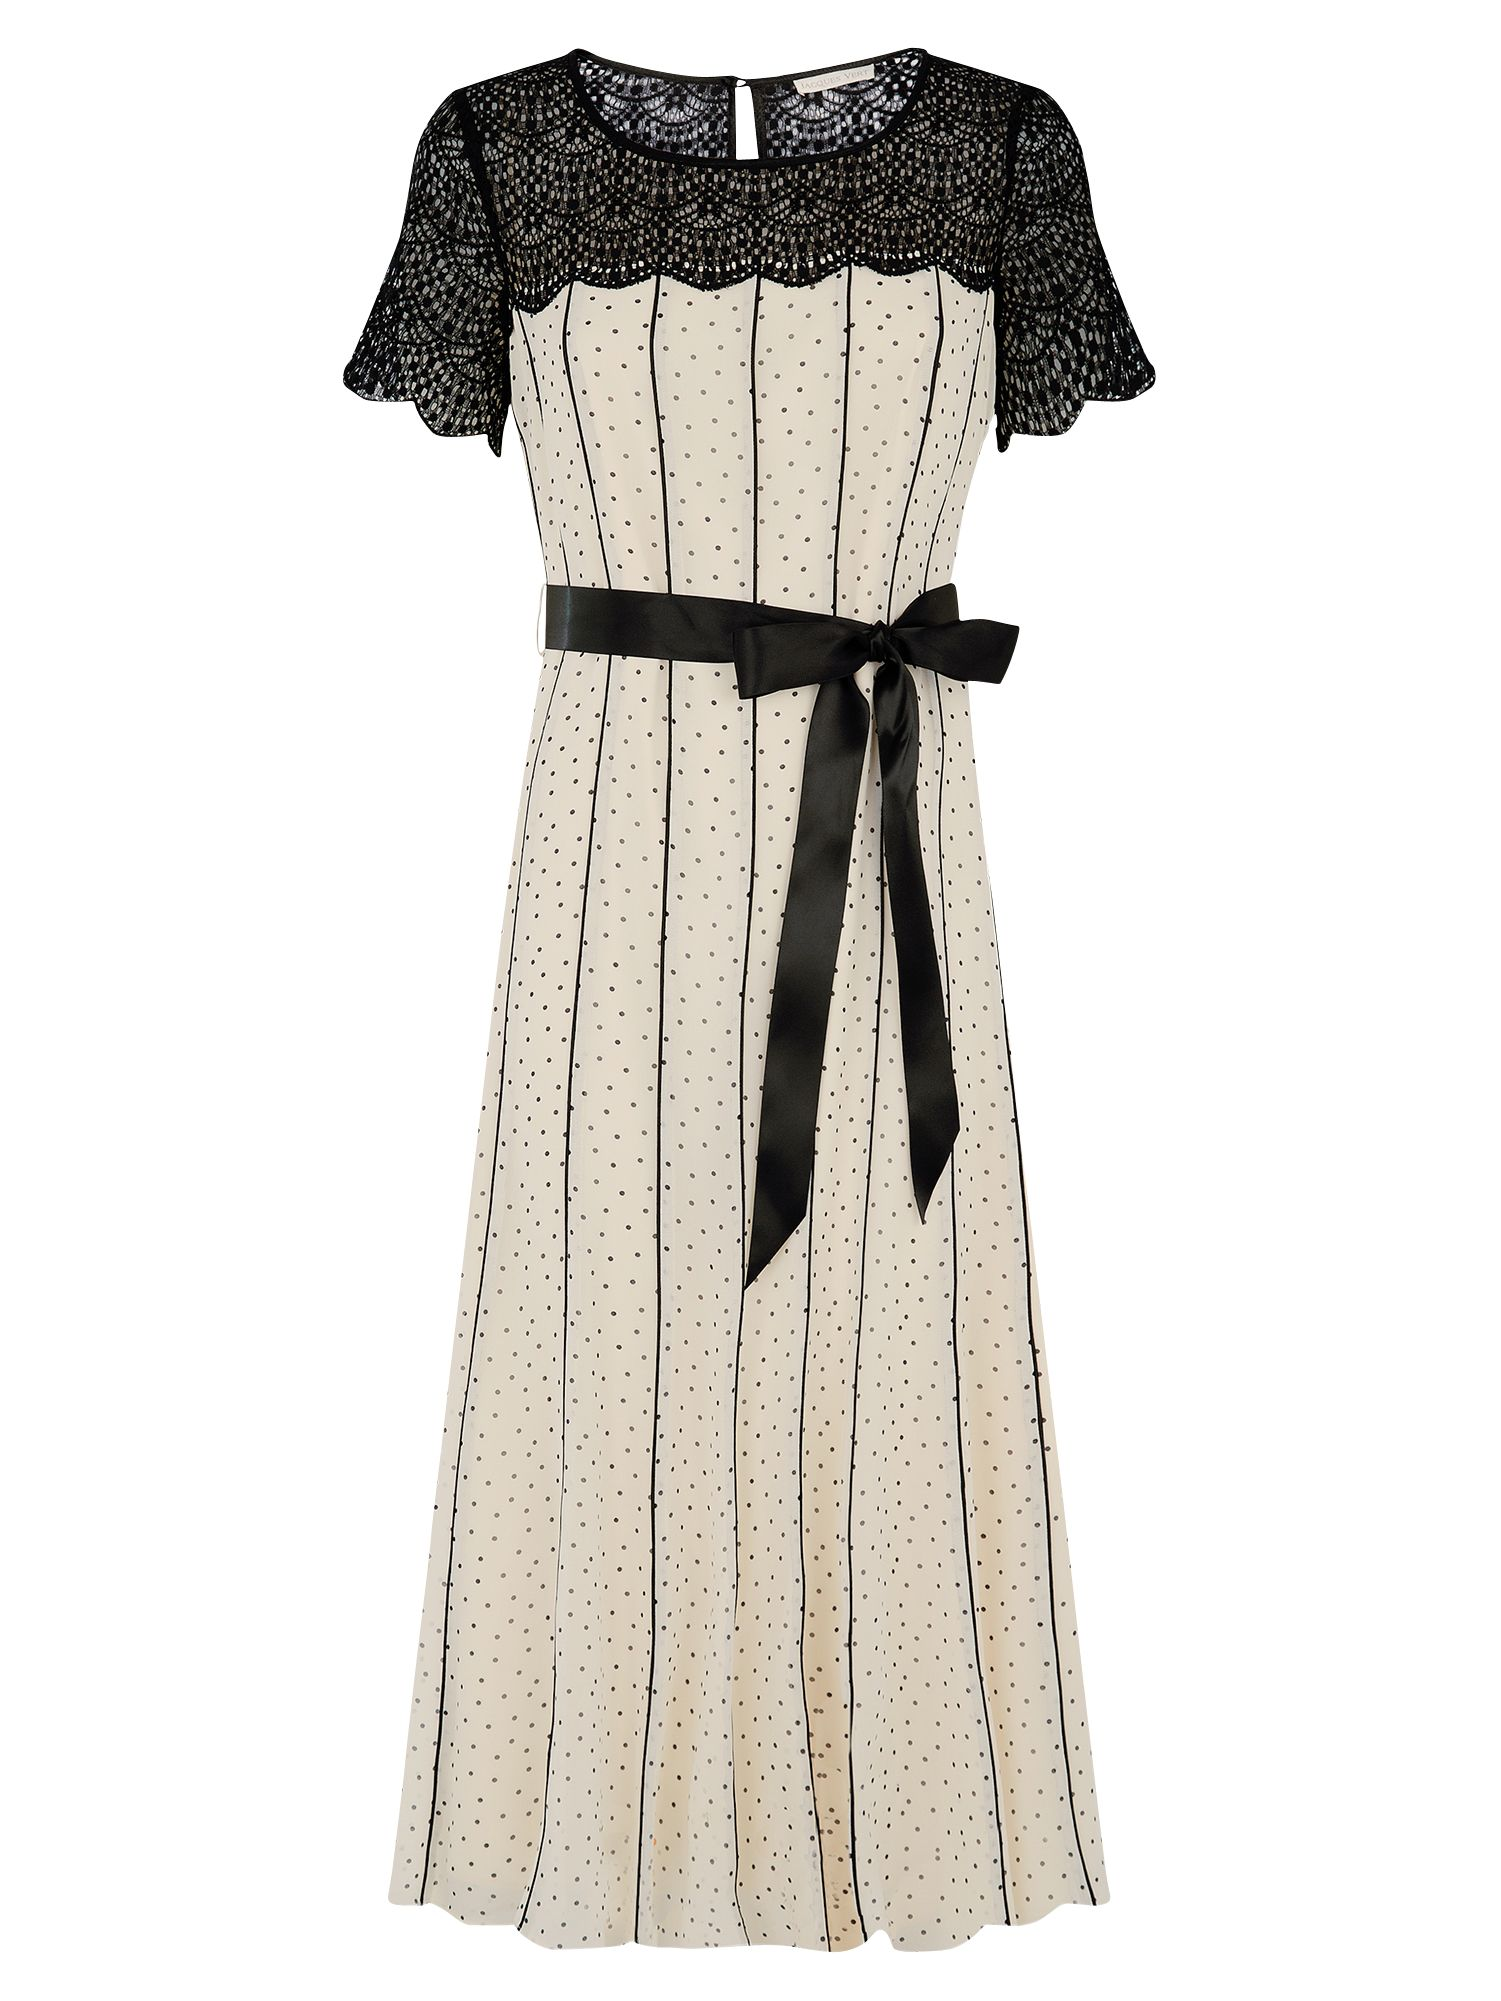 jacques vert piped soft prom dress cream/black, jacques, vert, piped, soft, prom, dress, cream/black, jacques vert, 14|12|16|22|24|10|18|20|8, women, plus size, womens dresses, 1867473